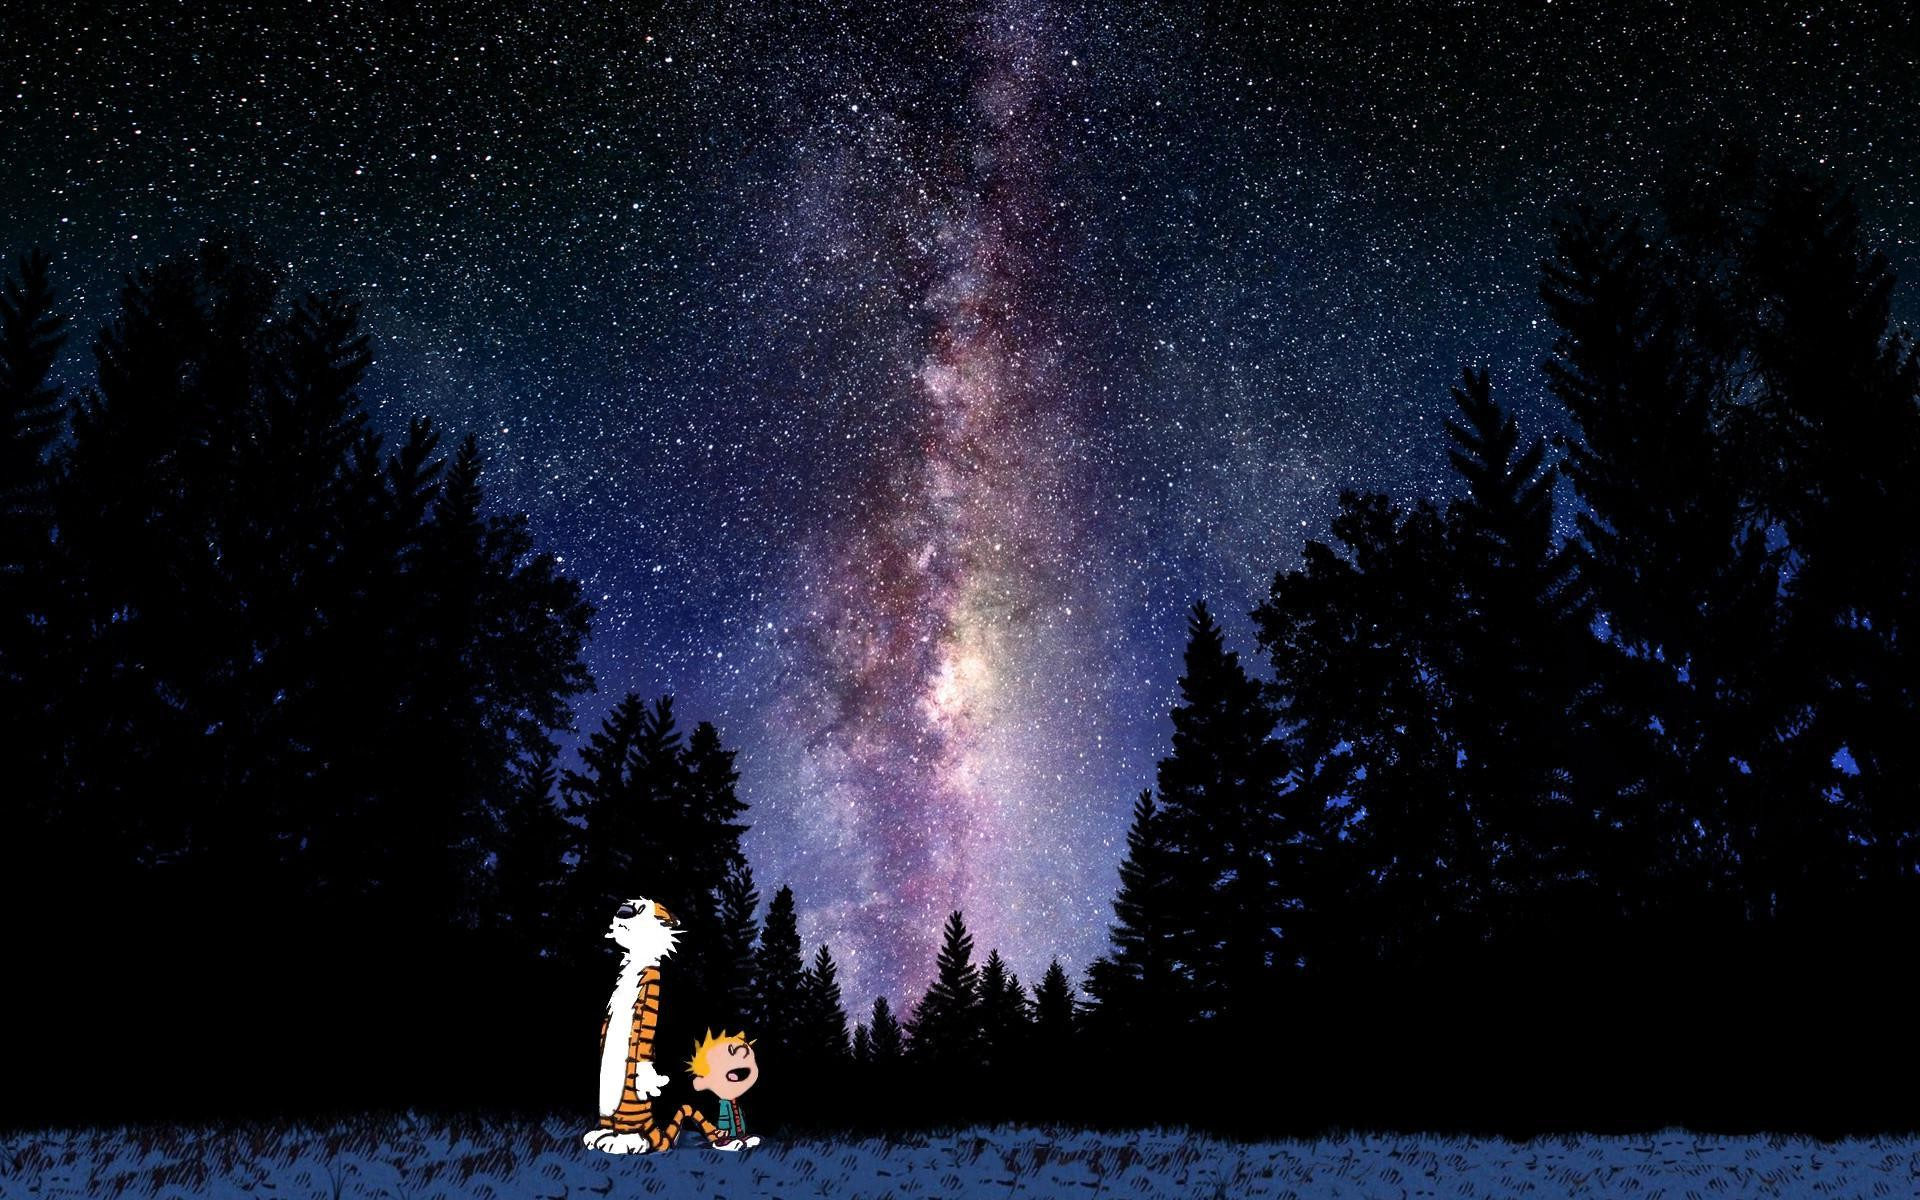 1920x1200 Calvin And Hobbes Looking At Stars Wallpaper |  | ID:35253